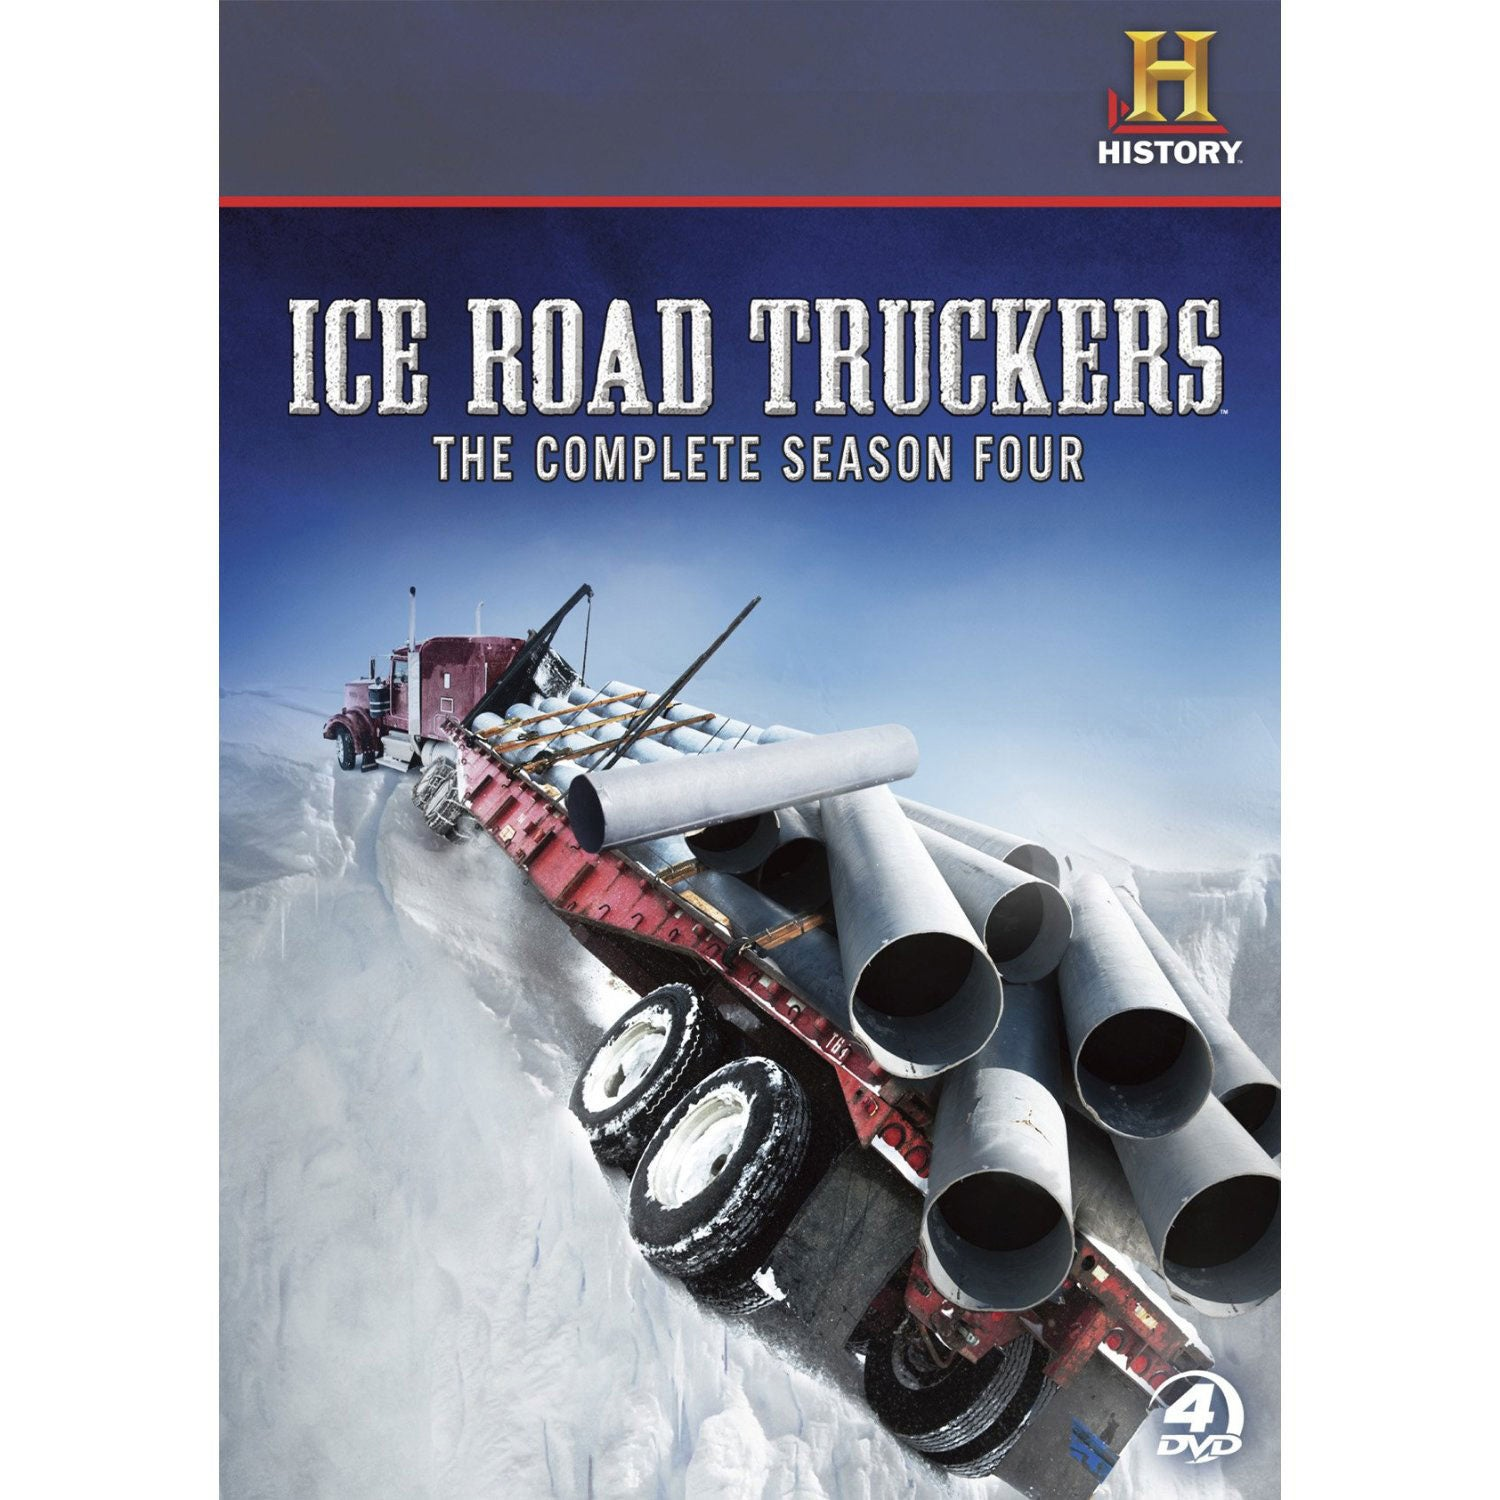 Ice Road Truckers: The Complete Season 4 (DVD)